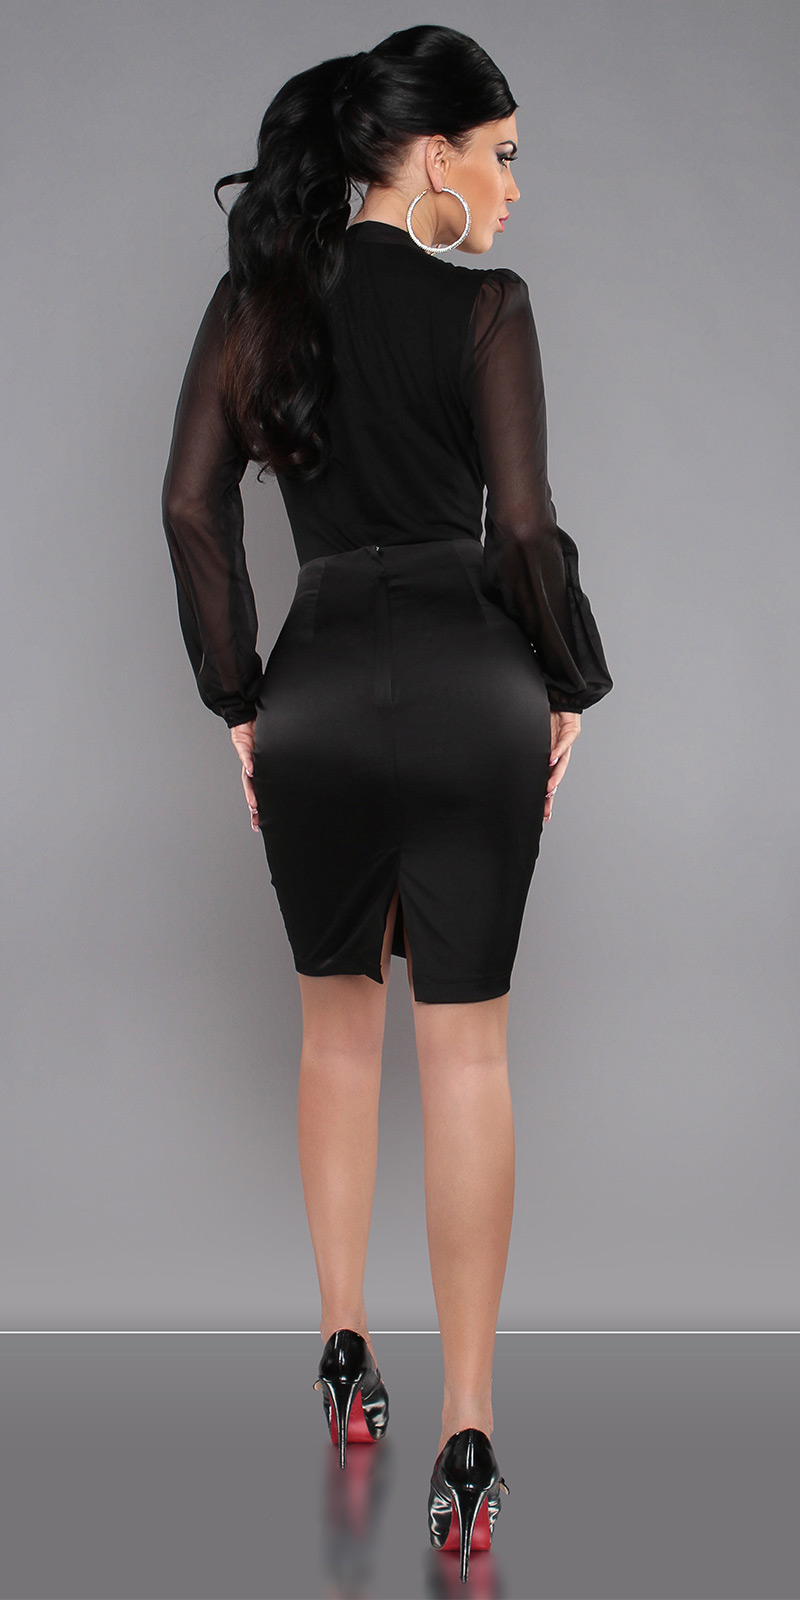 Pencil Skirt with Studs - Black - Size L - Click Image to Close